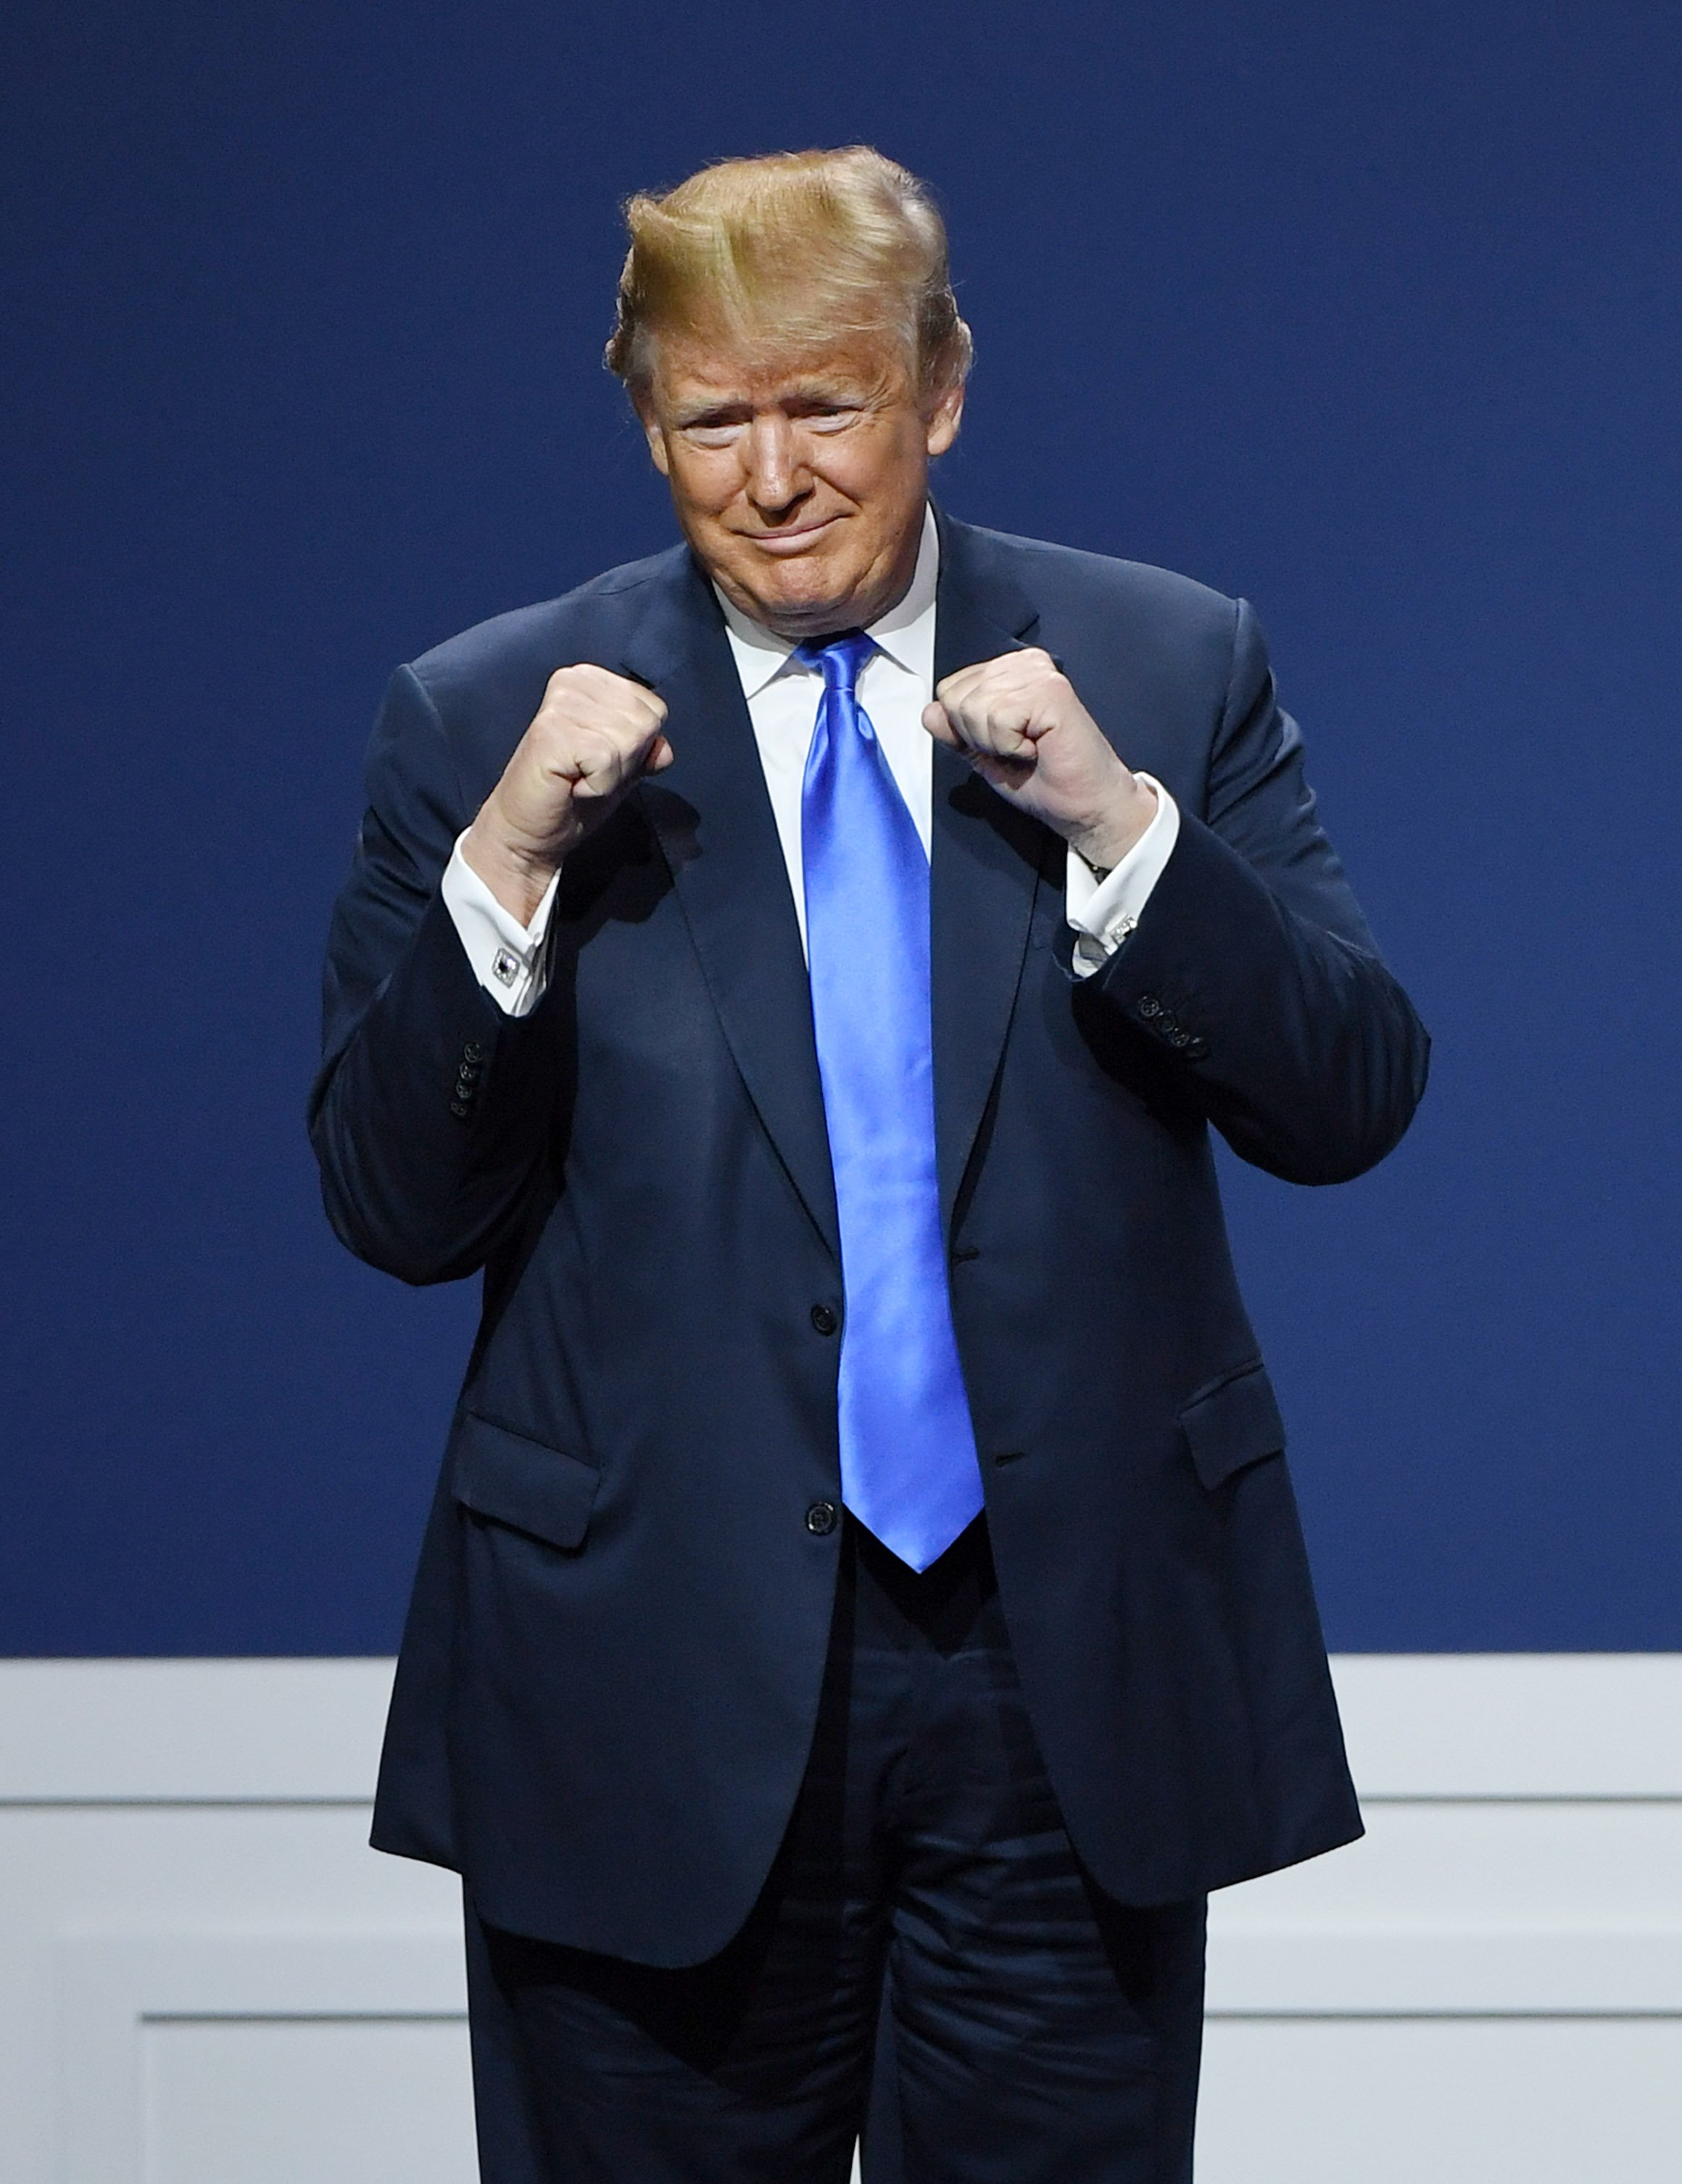 President Donald Trump   Photo: Getty Images